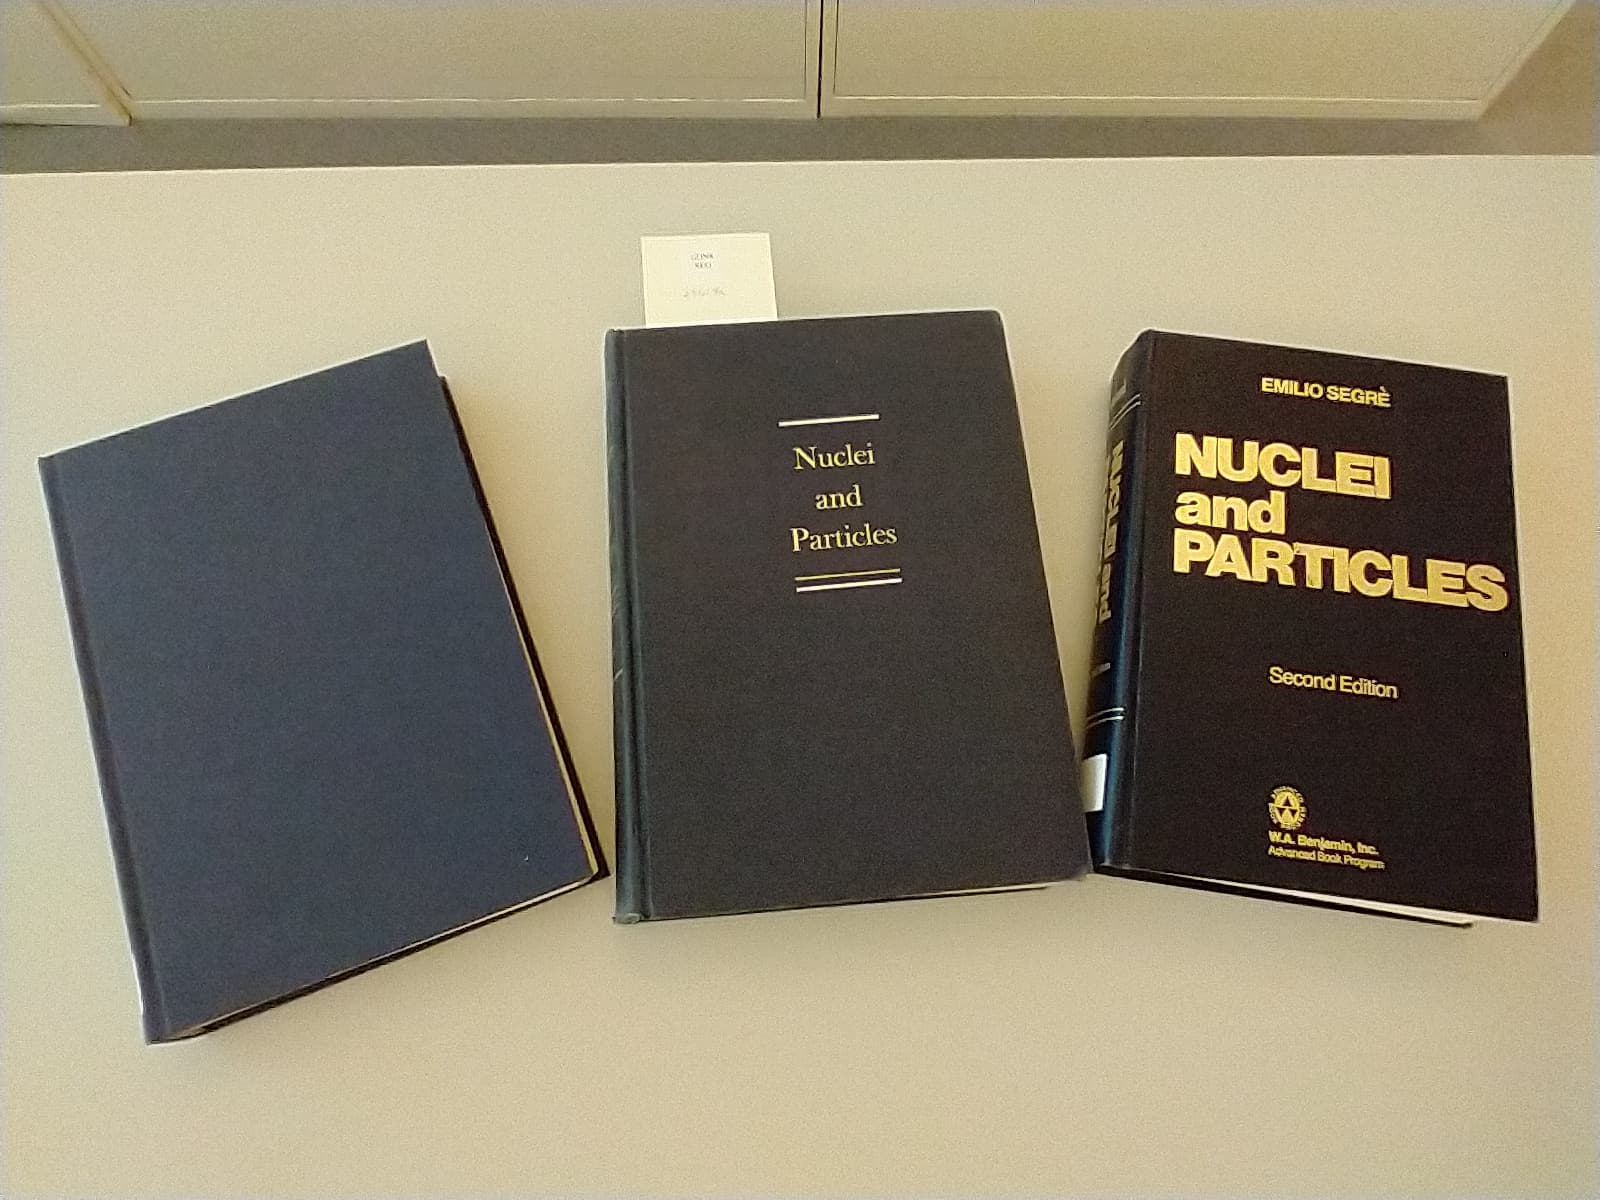 Three versions of Nuclei and Particles